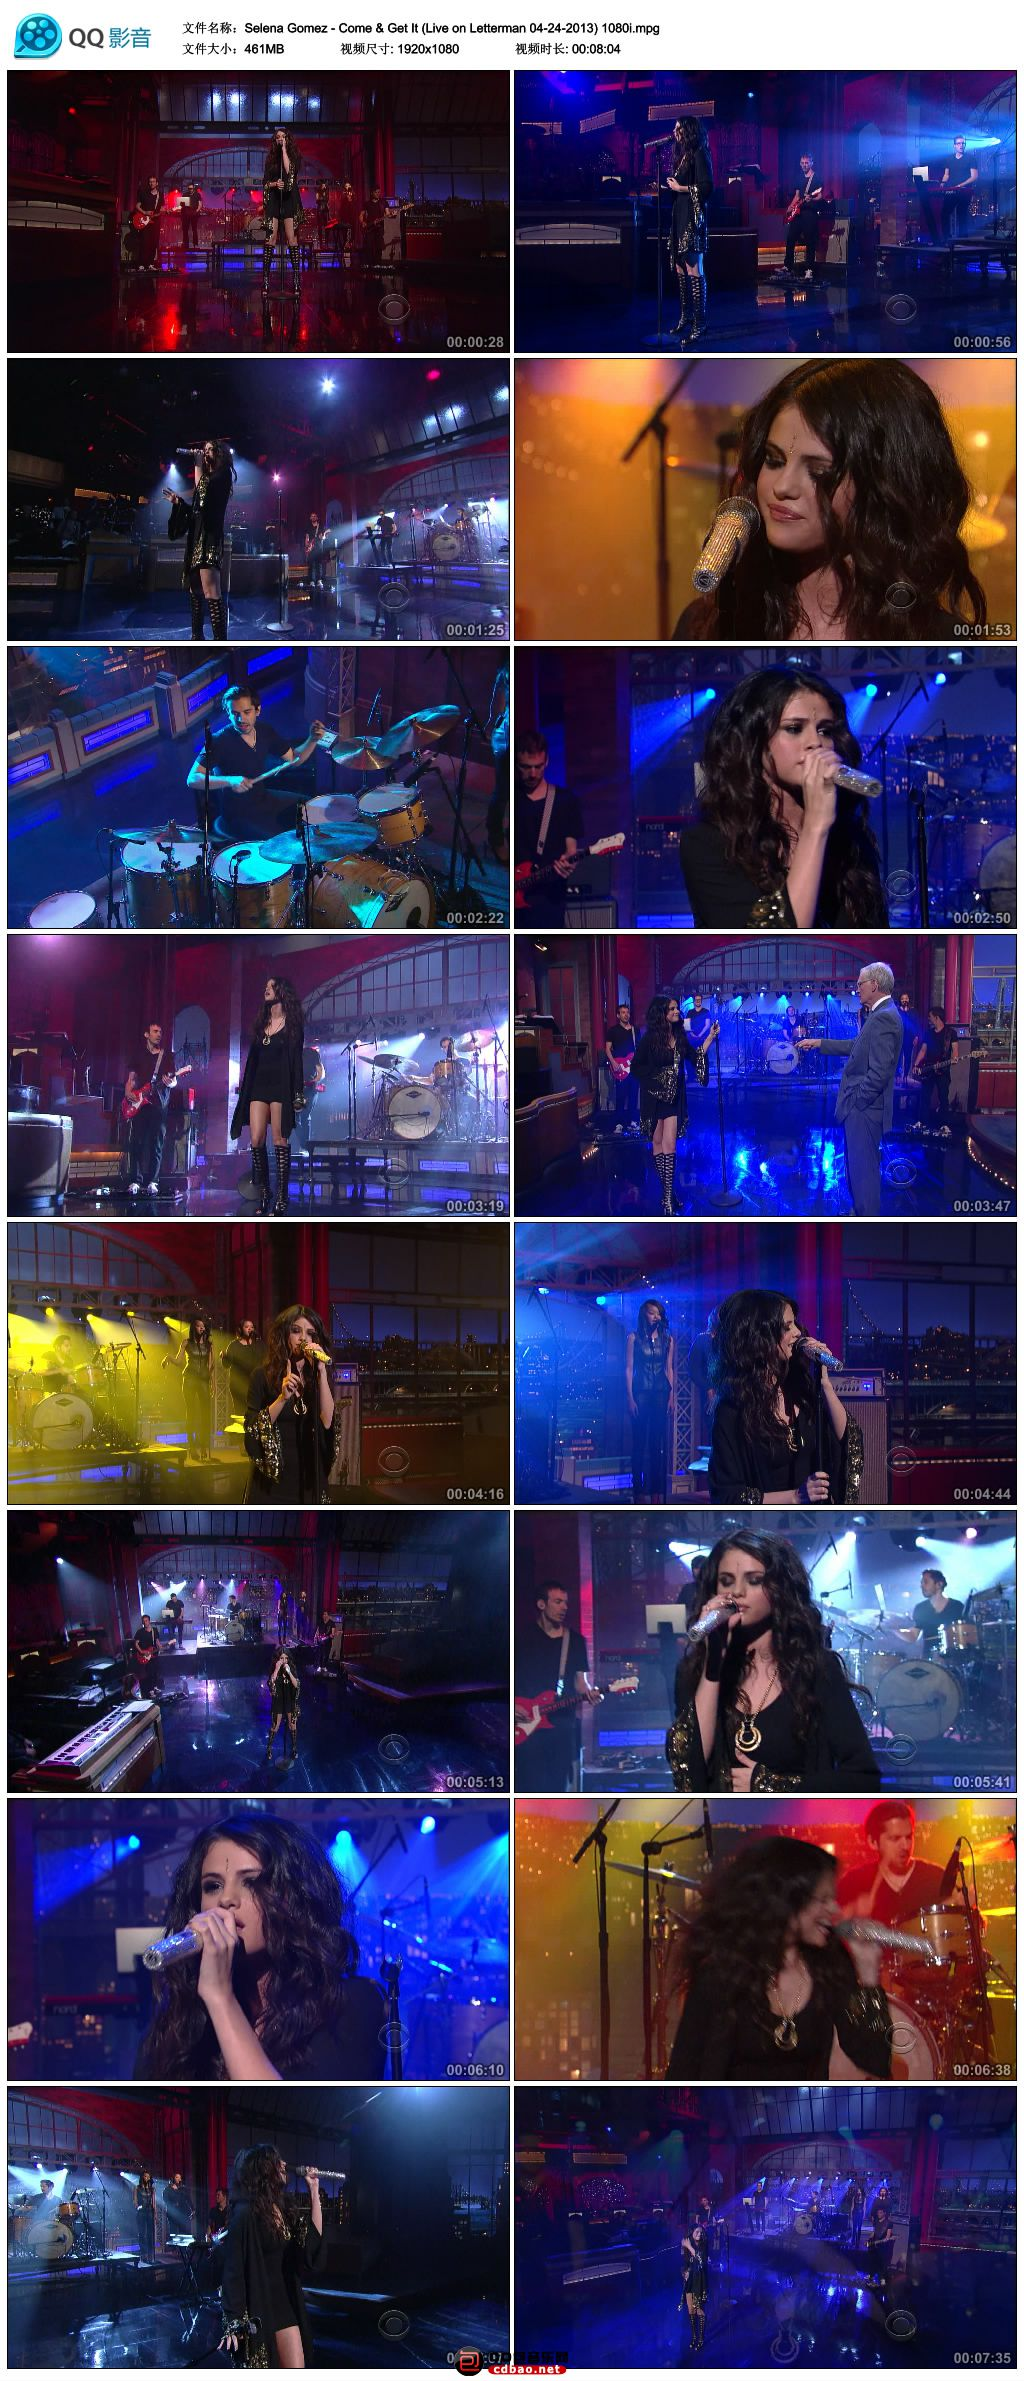 Selena Gomez - Come & Get It (Live on Letterman 04-24-2013) 1080i.mpg_thumbs_201.jpg